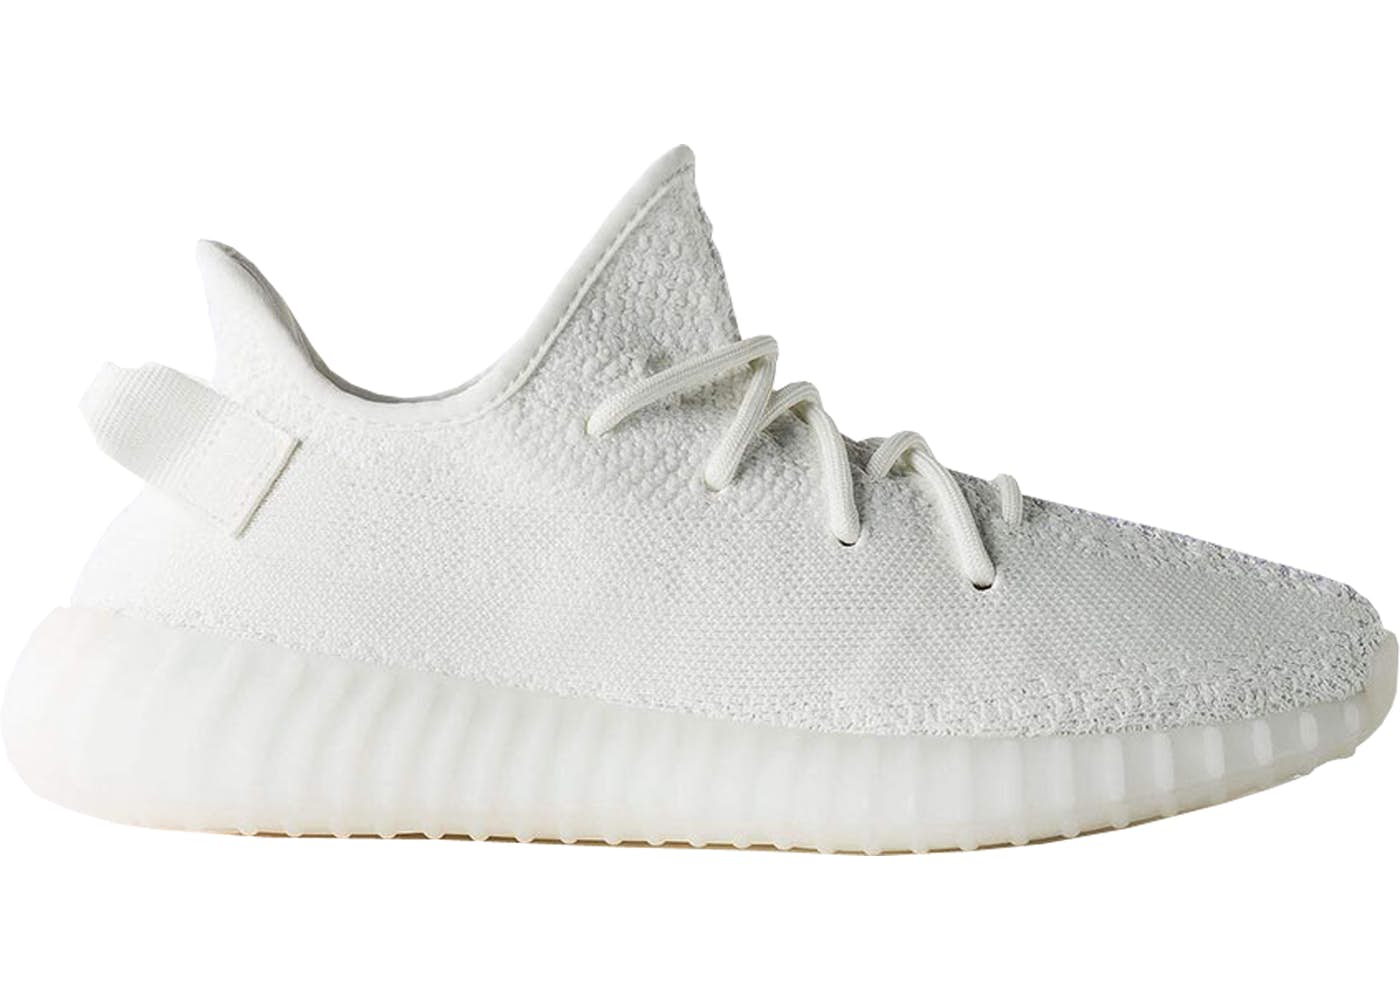 adidas yeezy cream white